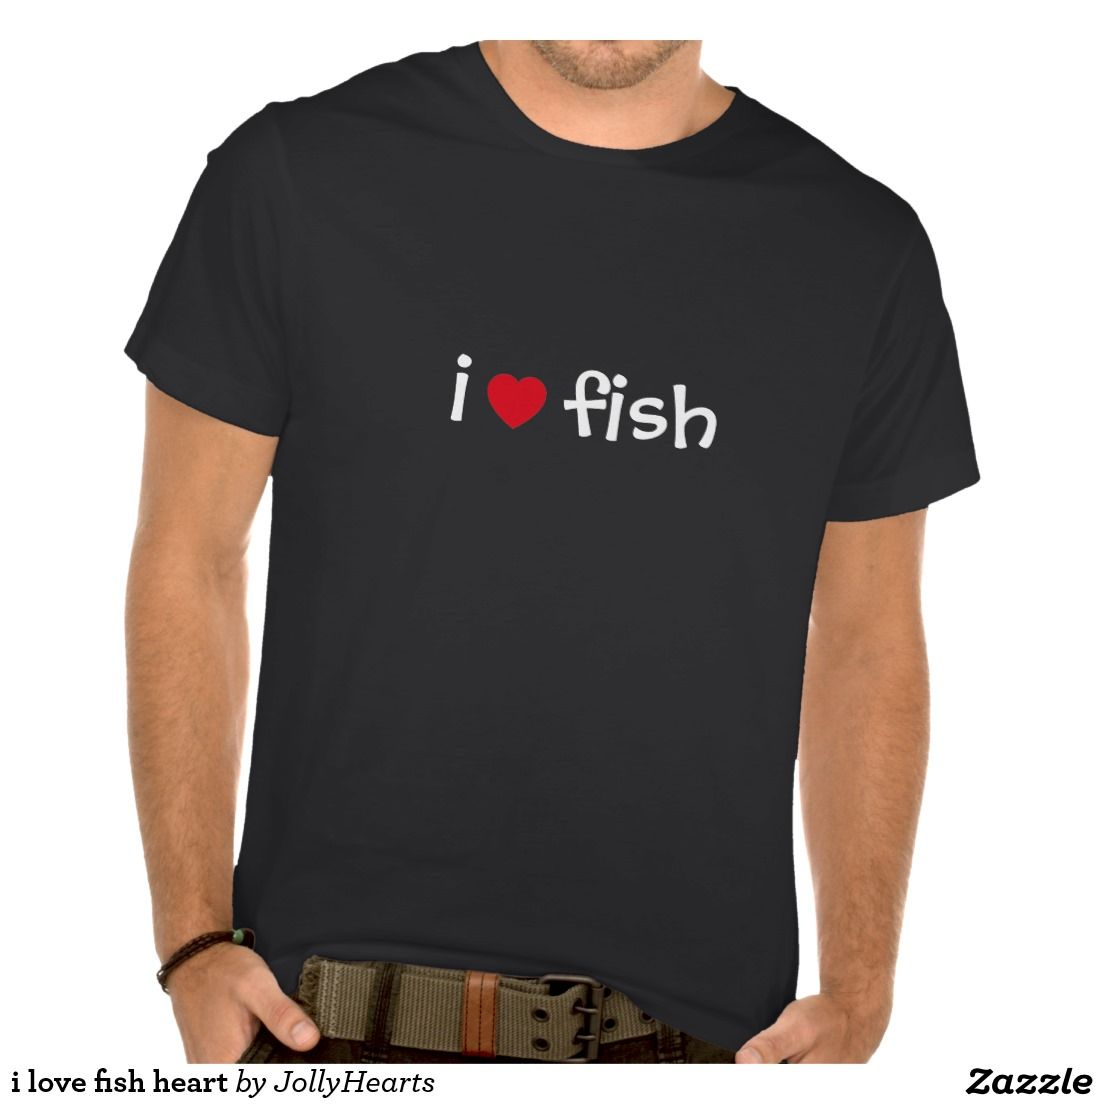 i love fish heart shirts for the hearty fisherman or seafood chef.